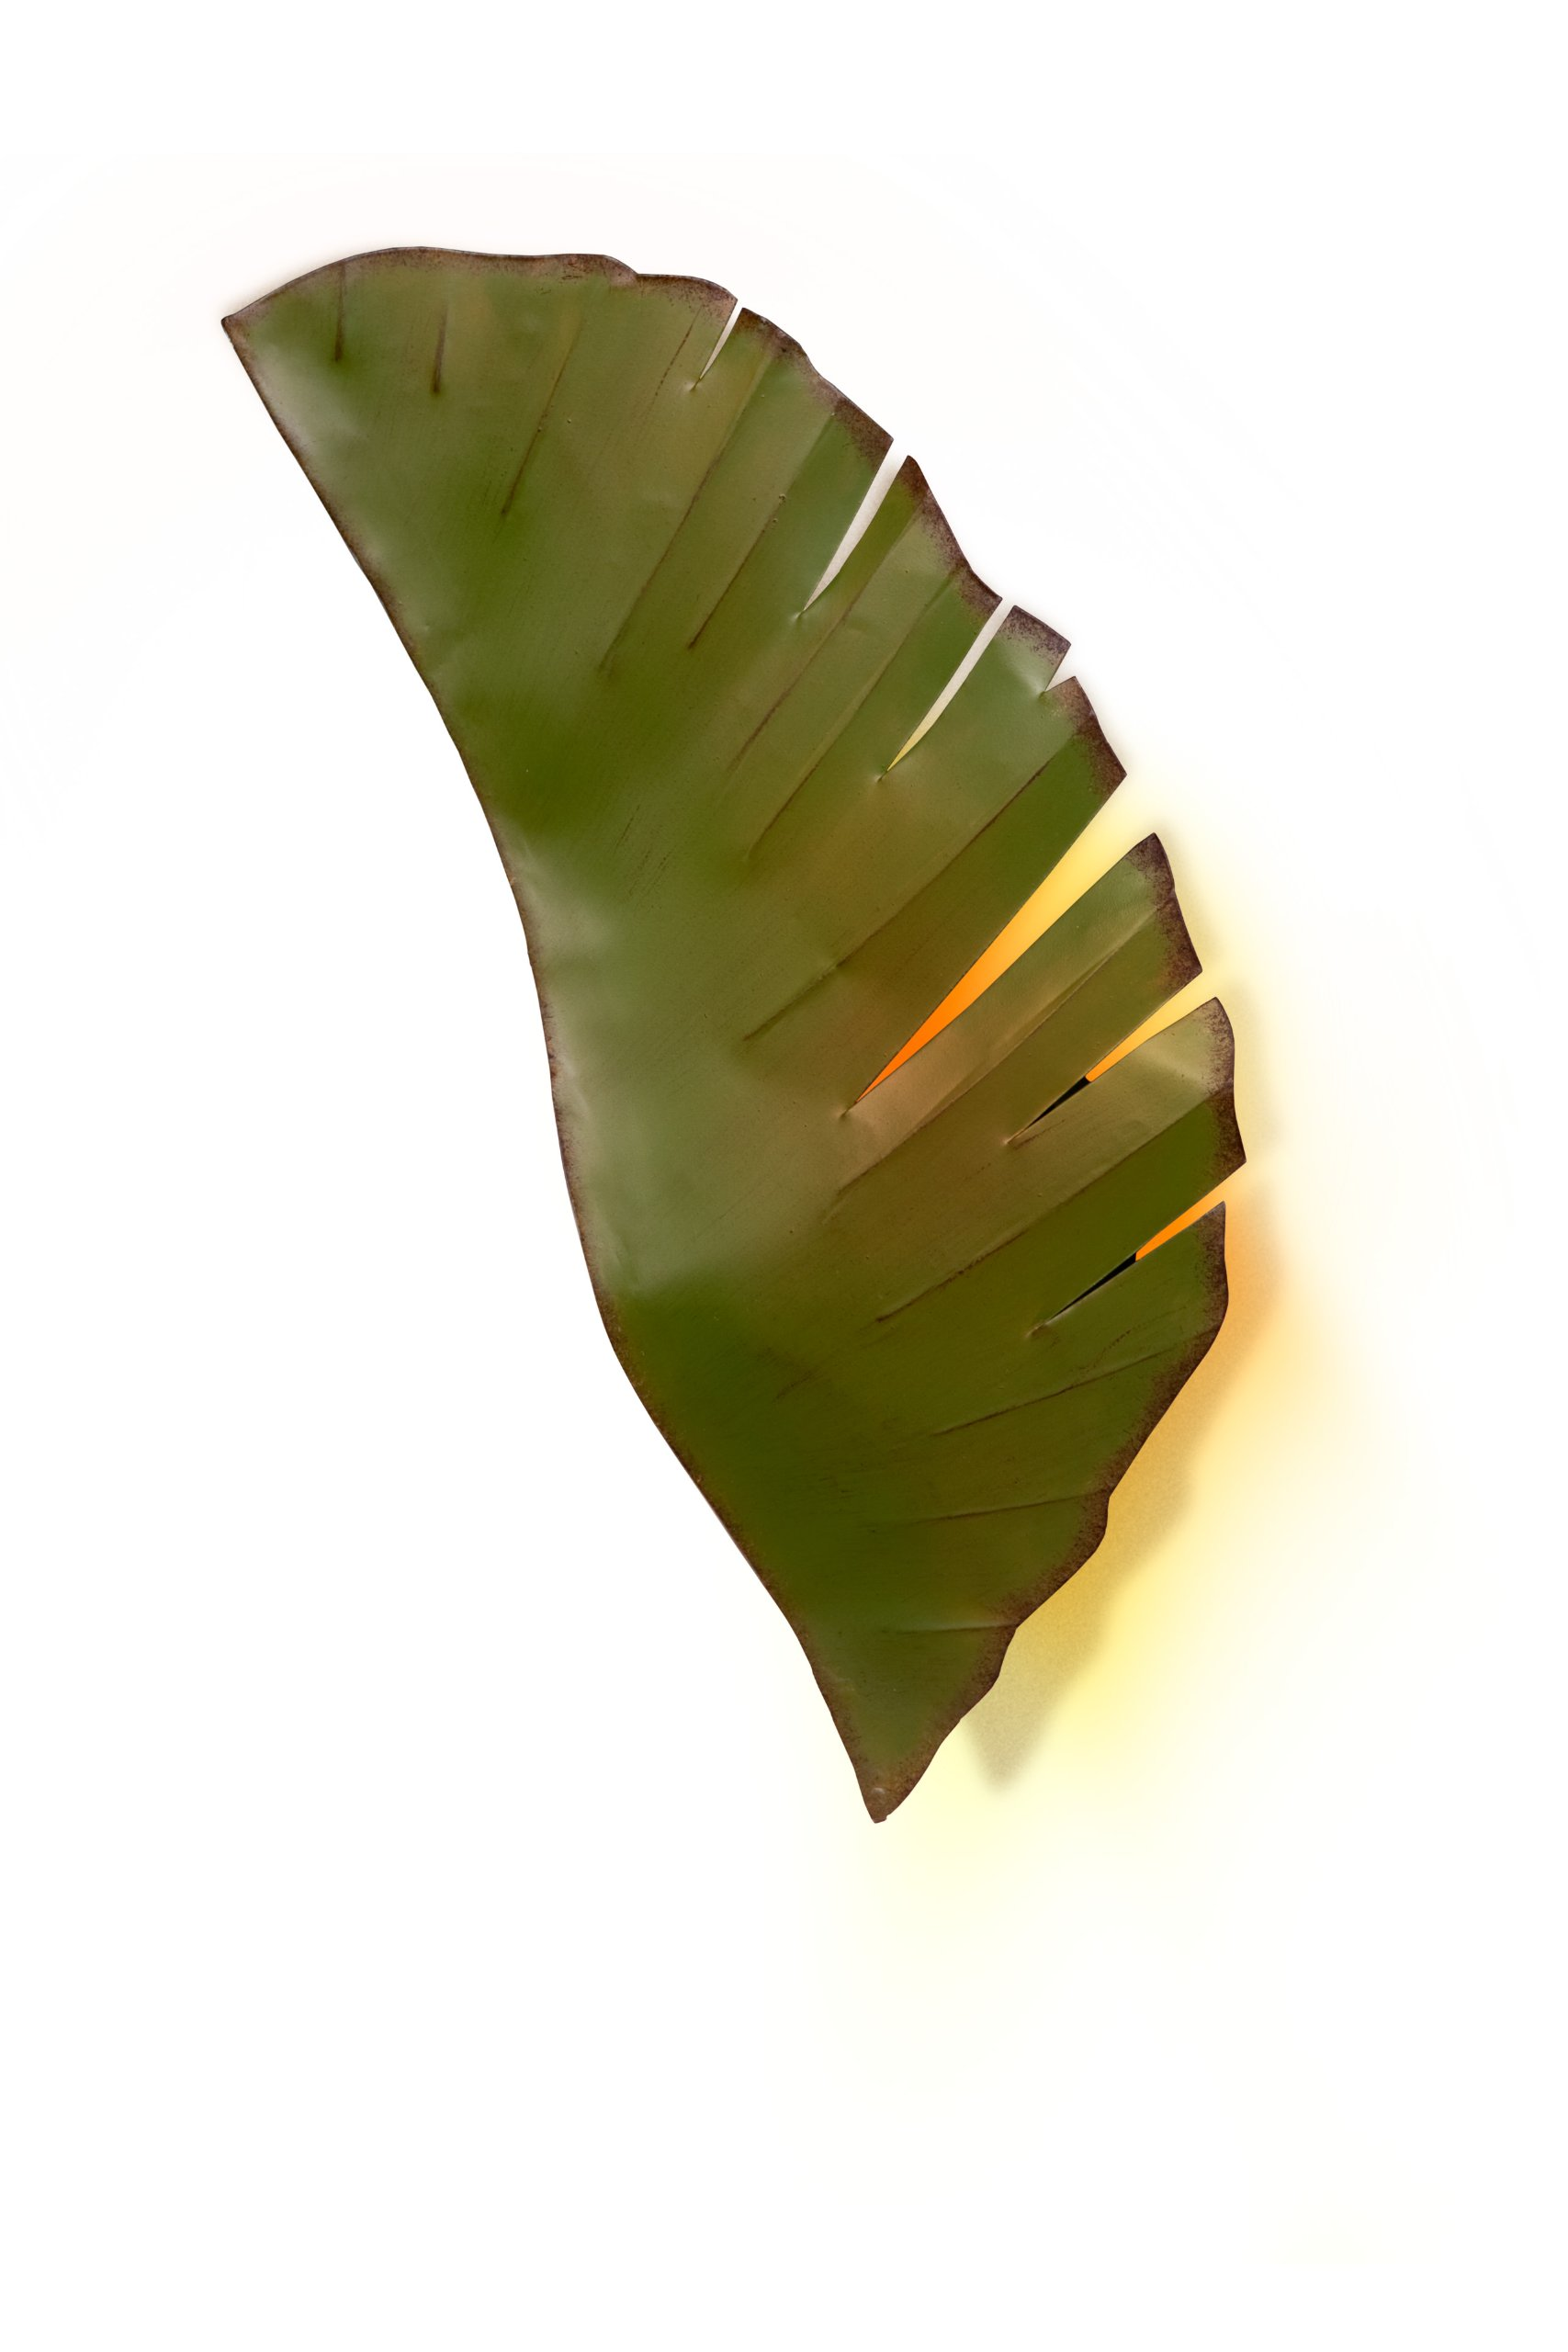 Varaluz 901K02 Banana Leaf 2-Light Wall Sconce - Banana Leaf Finish